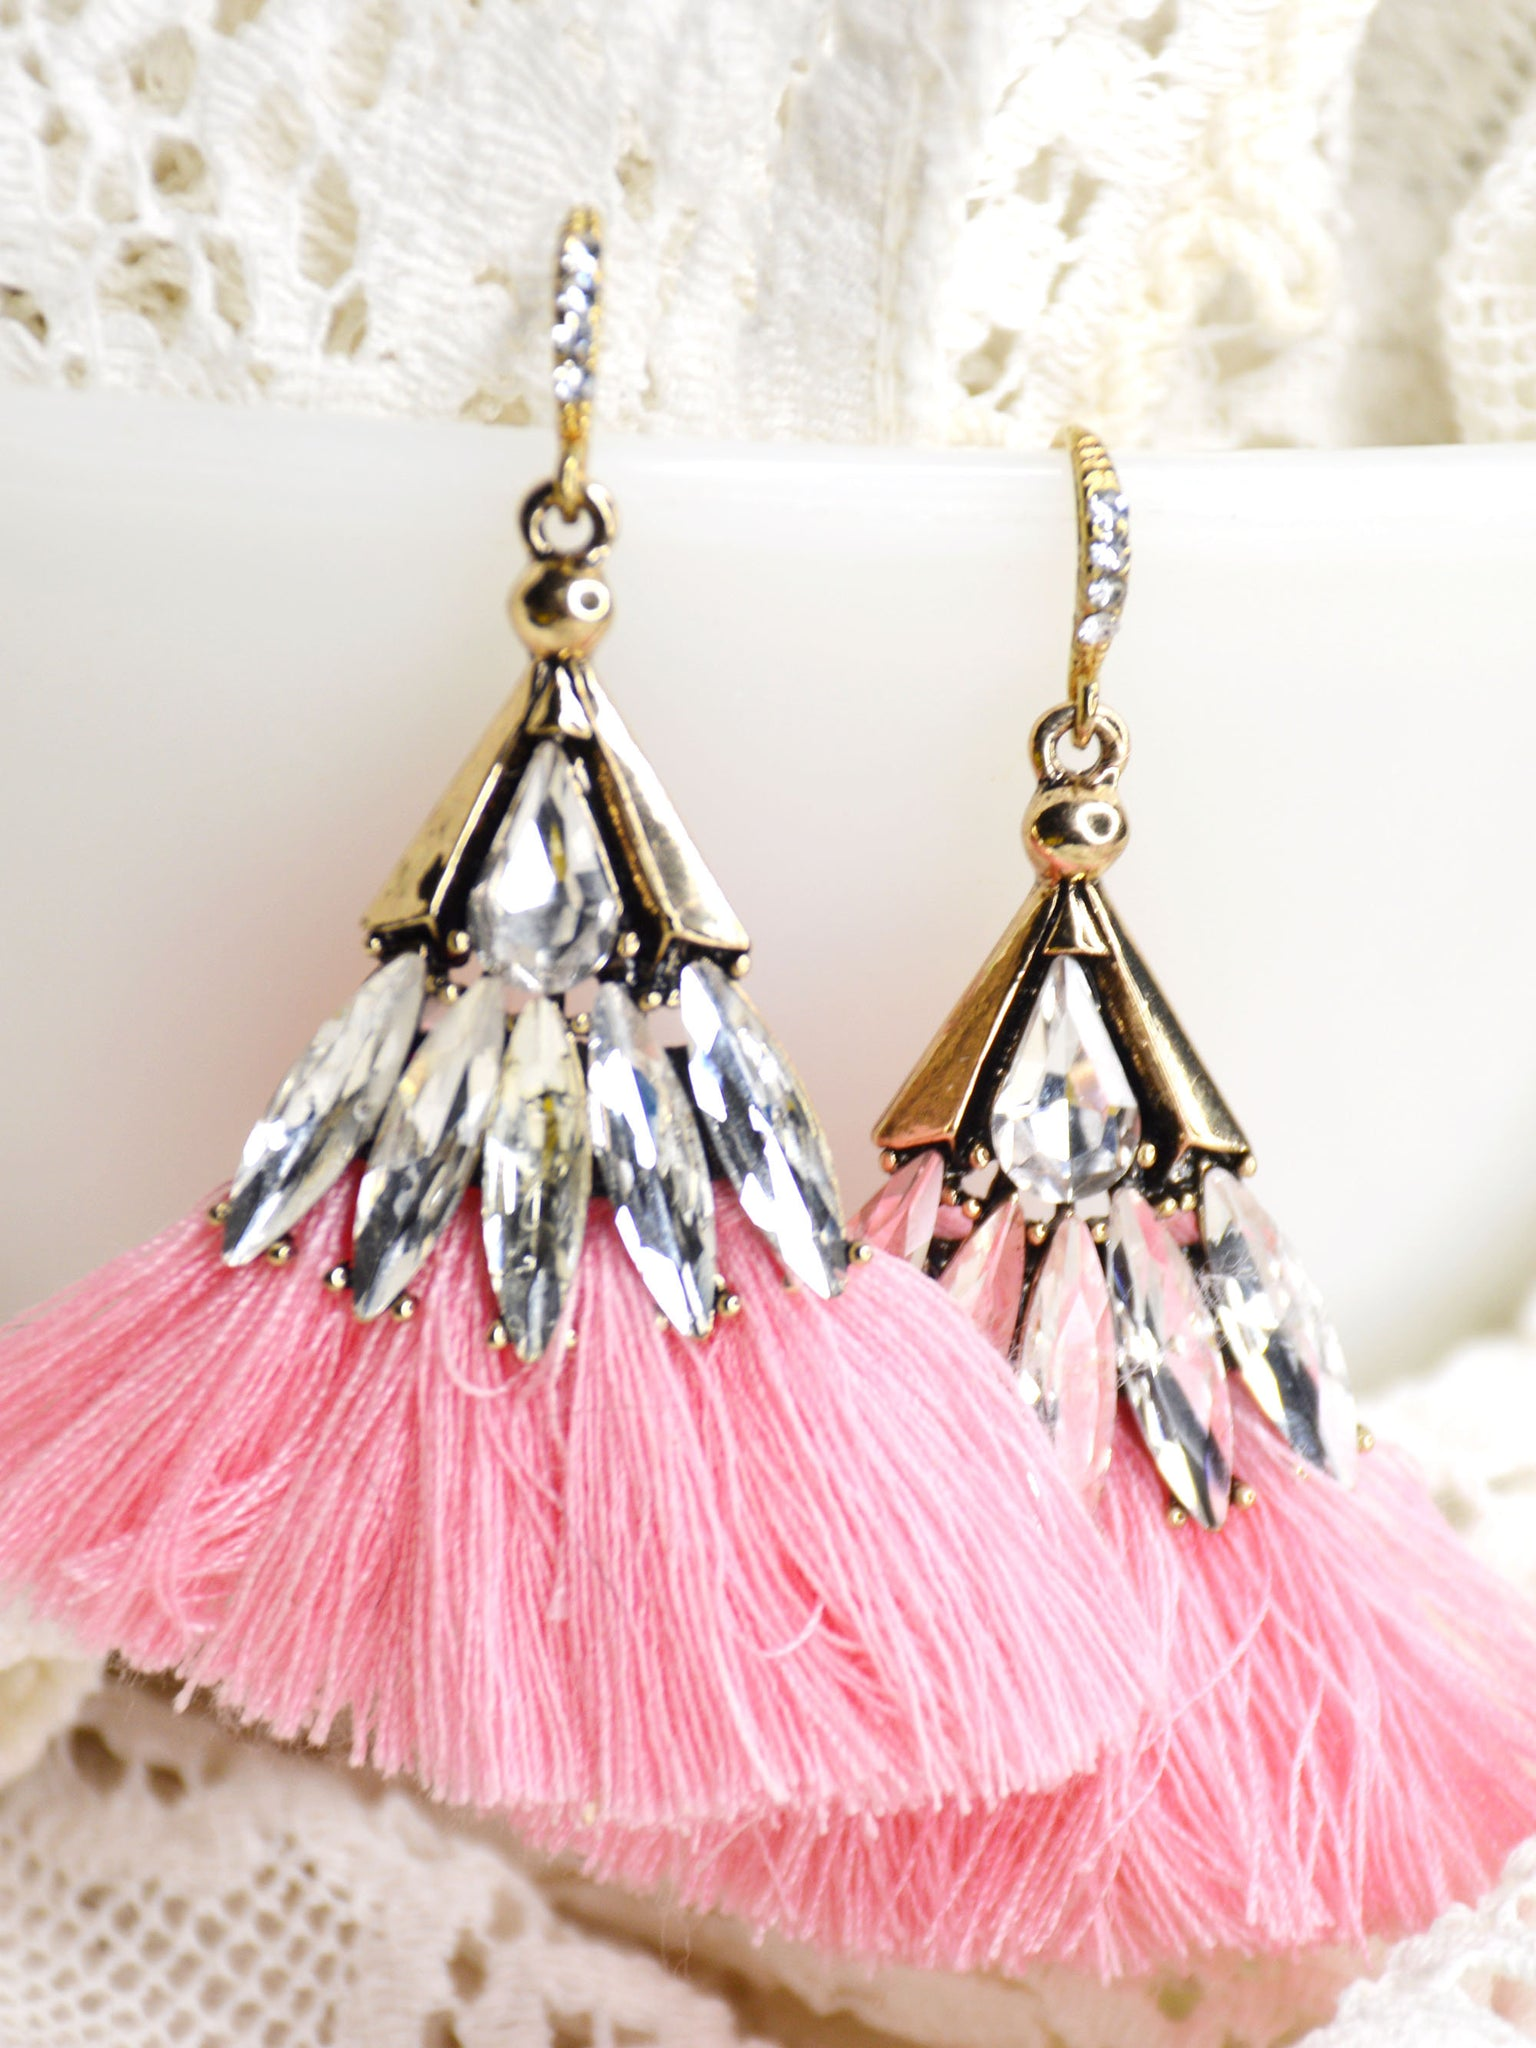 pink fan tassel earrings with crystals